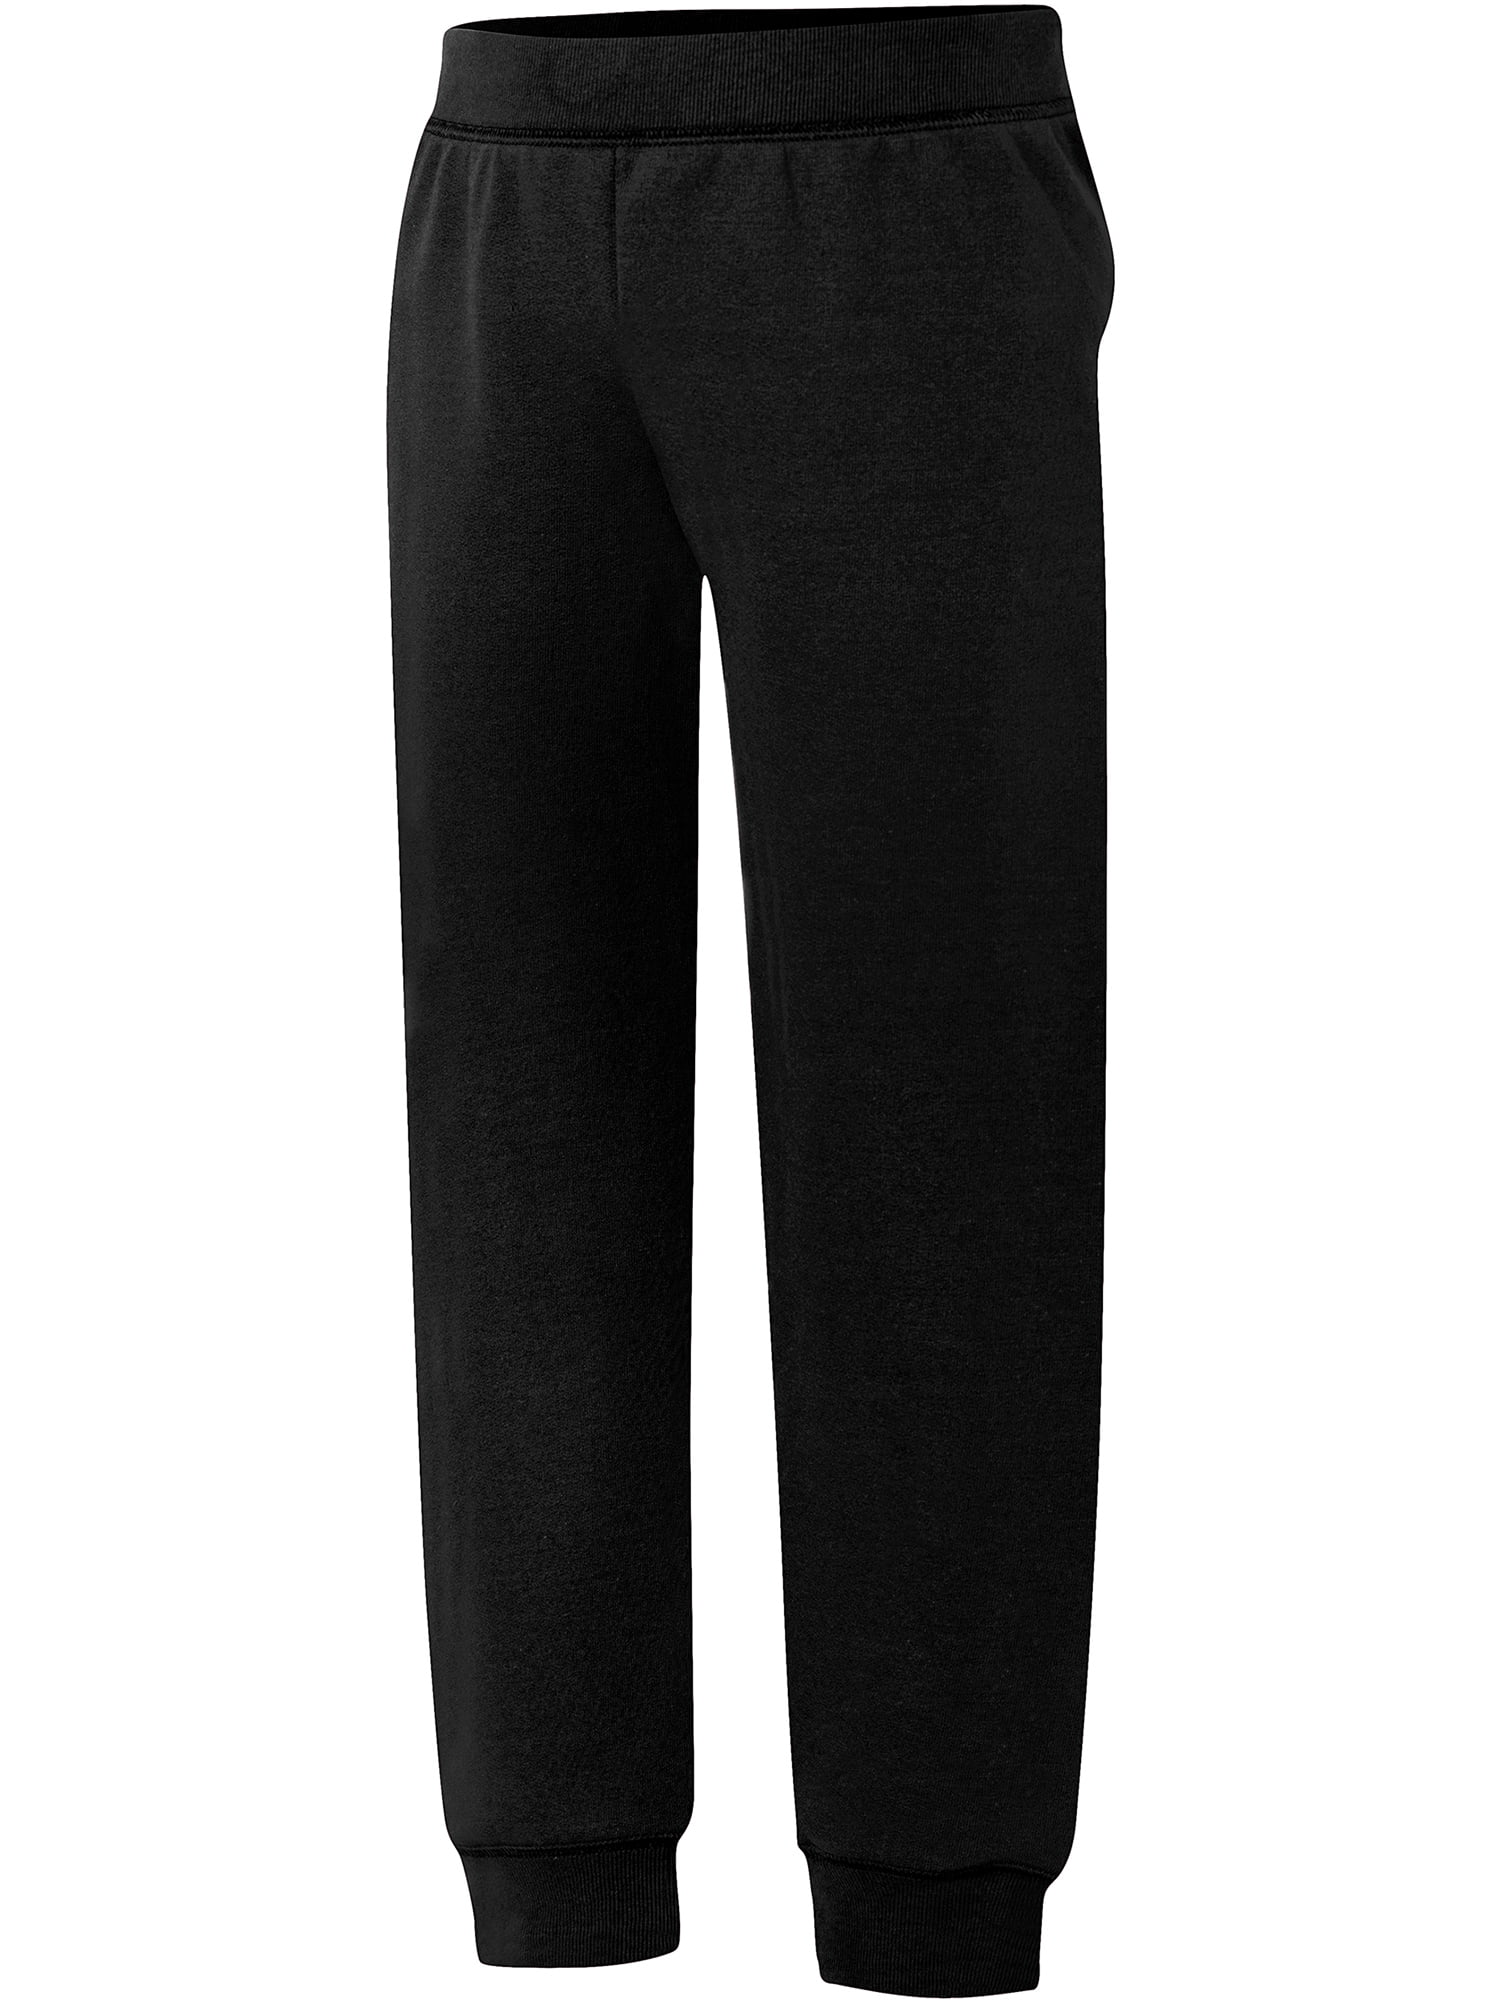 Real Love Girls Fleece Jogger Sweatpants with Pockets 4 Pack